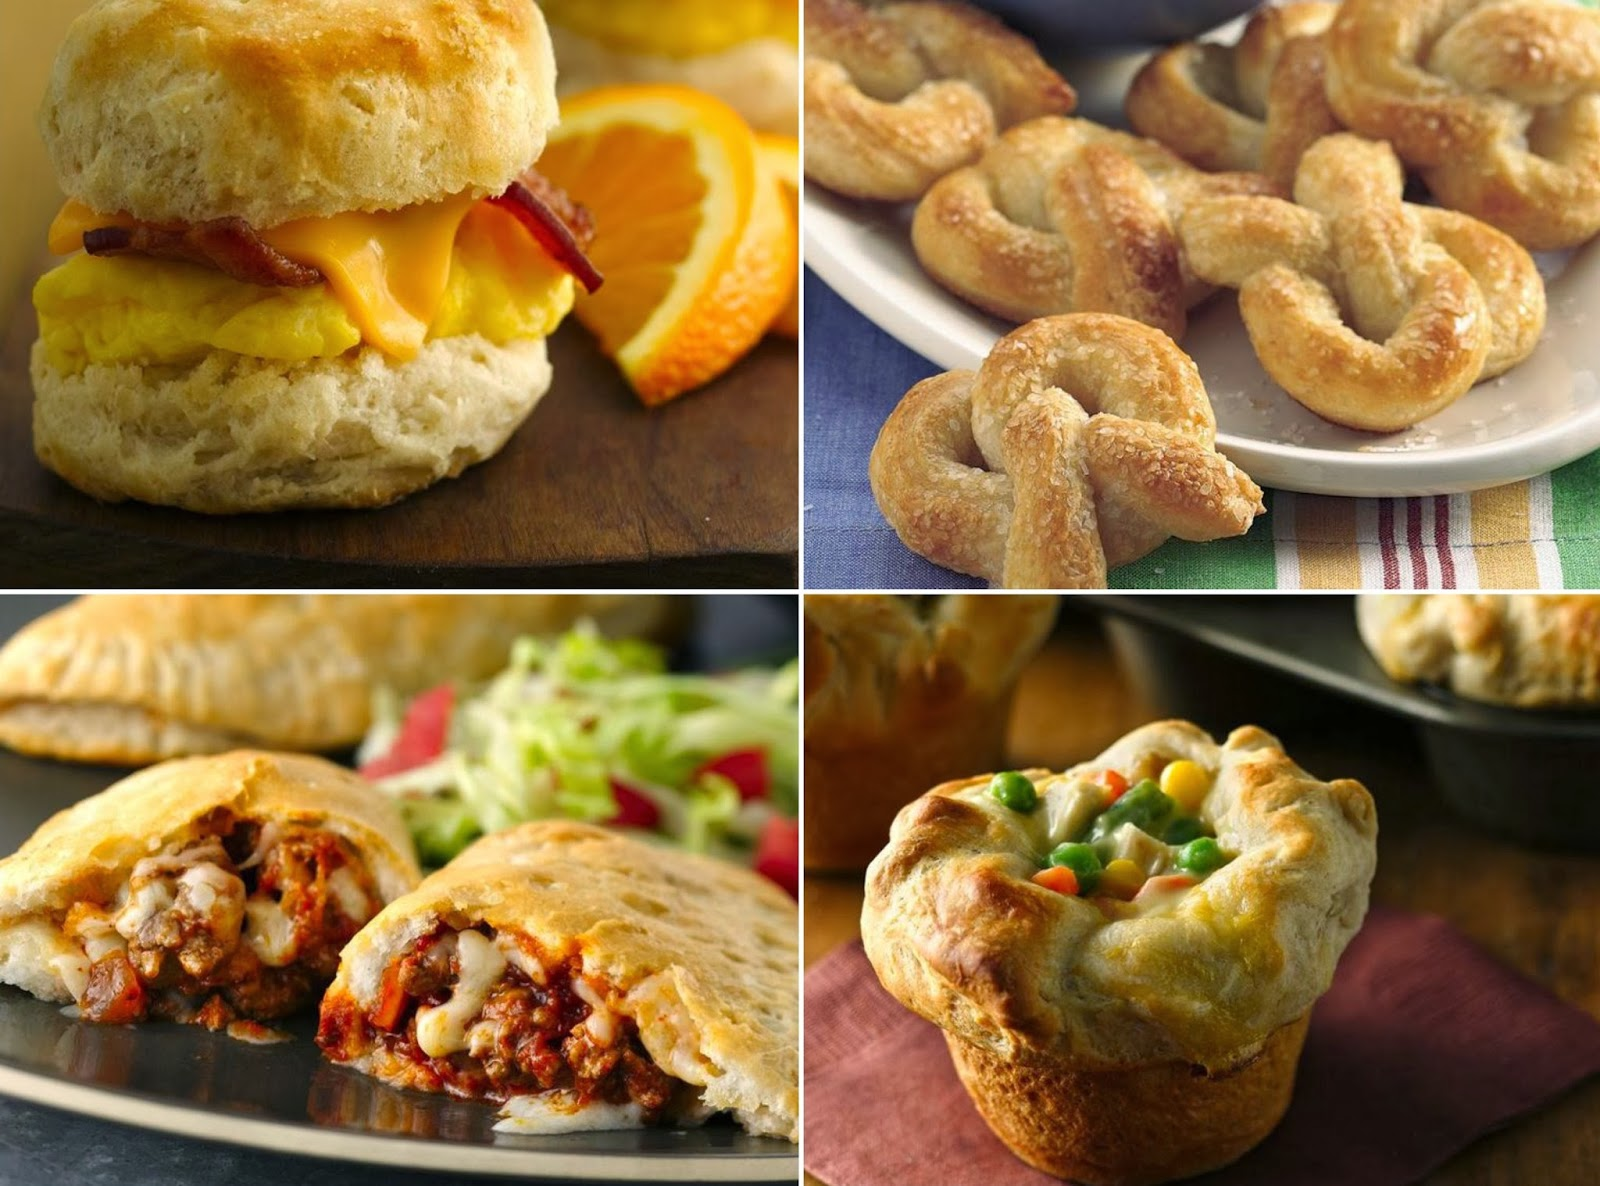 Nov 19, Pillsbury biscuits can be so much more than a side bread (though yes, they are good for that too!). We highlight the best of biscuit sandwiches, biscuit bakes and more in this biscuit-y board. | See more ideas about Biscuit recipe, Biscuit sandwich and Dinner recipes.